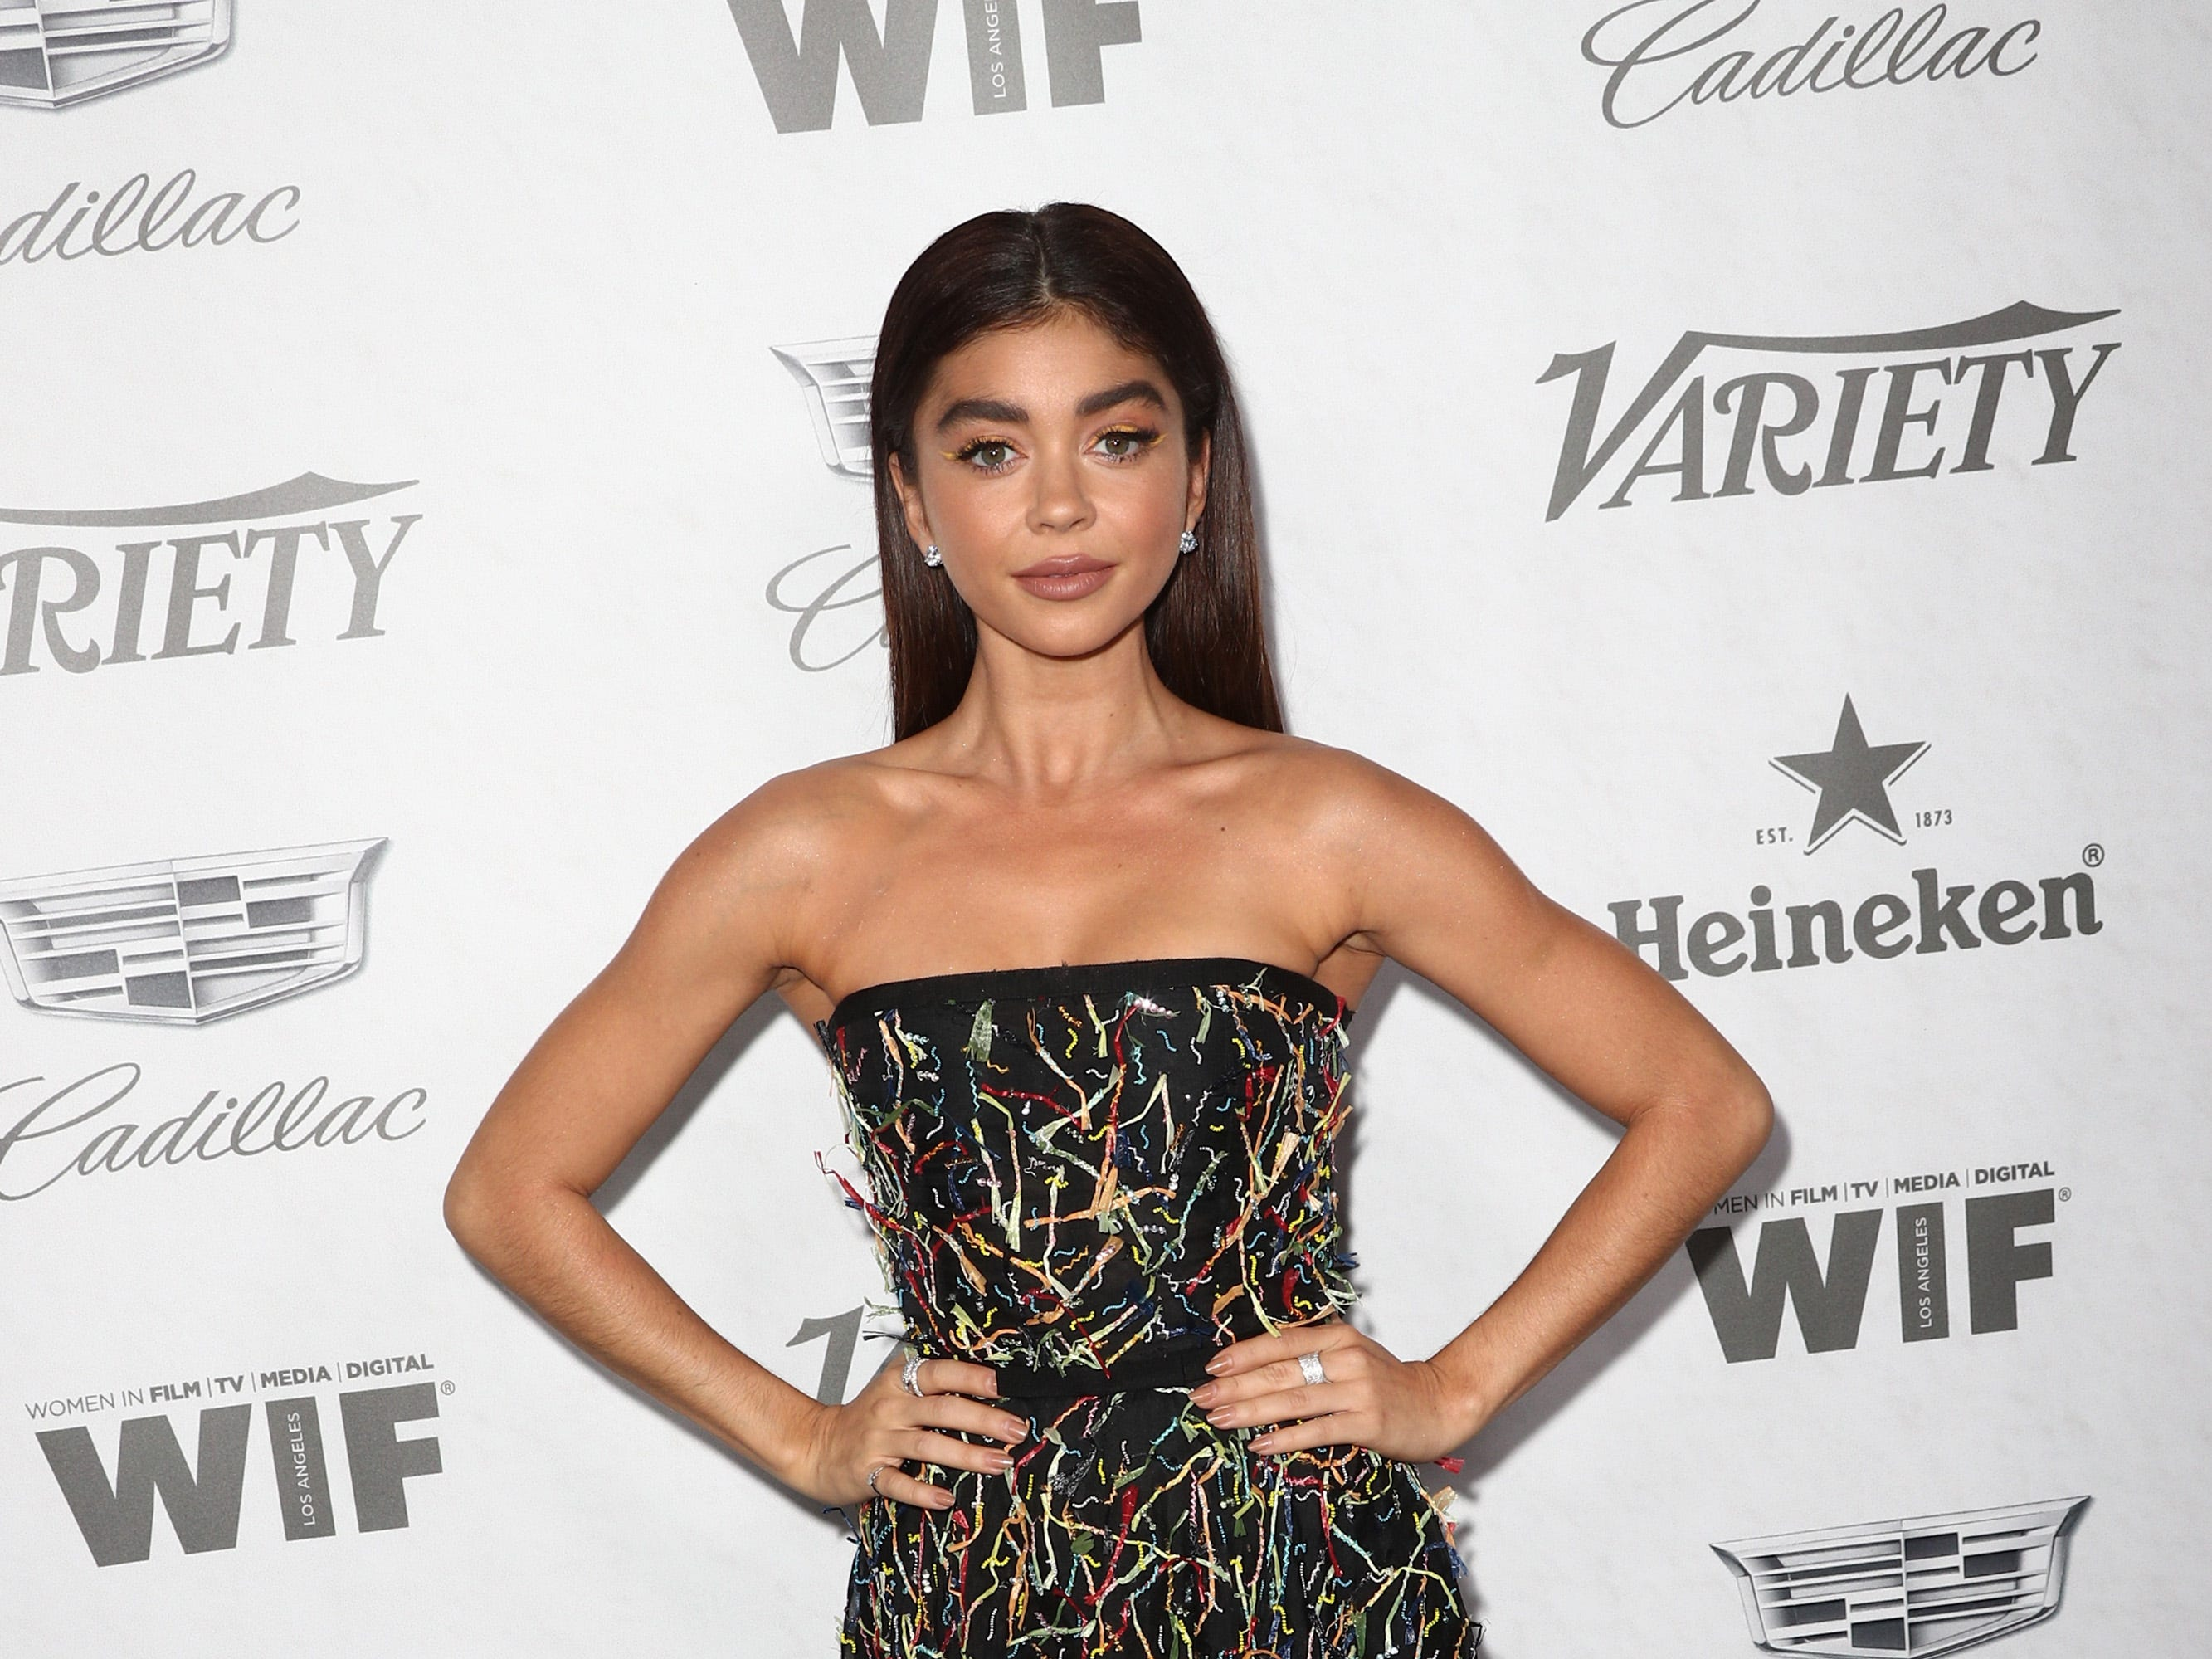 WEST HOLLYWOOD, CA - SEPTEMBER 15:  Sarah Hyland attends Variety and Women in Film's 2018 Pre-Emmy Celebration at Cecconi's on September 15, 2018 in West Hollywood, California.  (Photo by Frederick M. Brown/Getty Images) ORG XMIT: 775218358 ORIG FILE ID: 1033989040